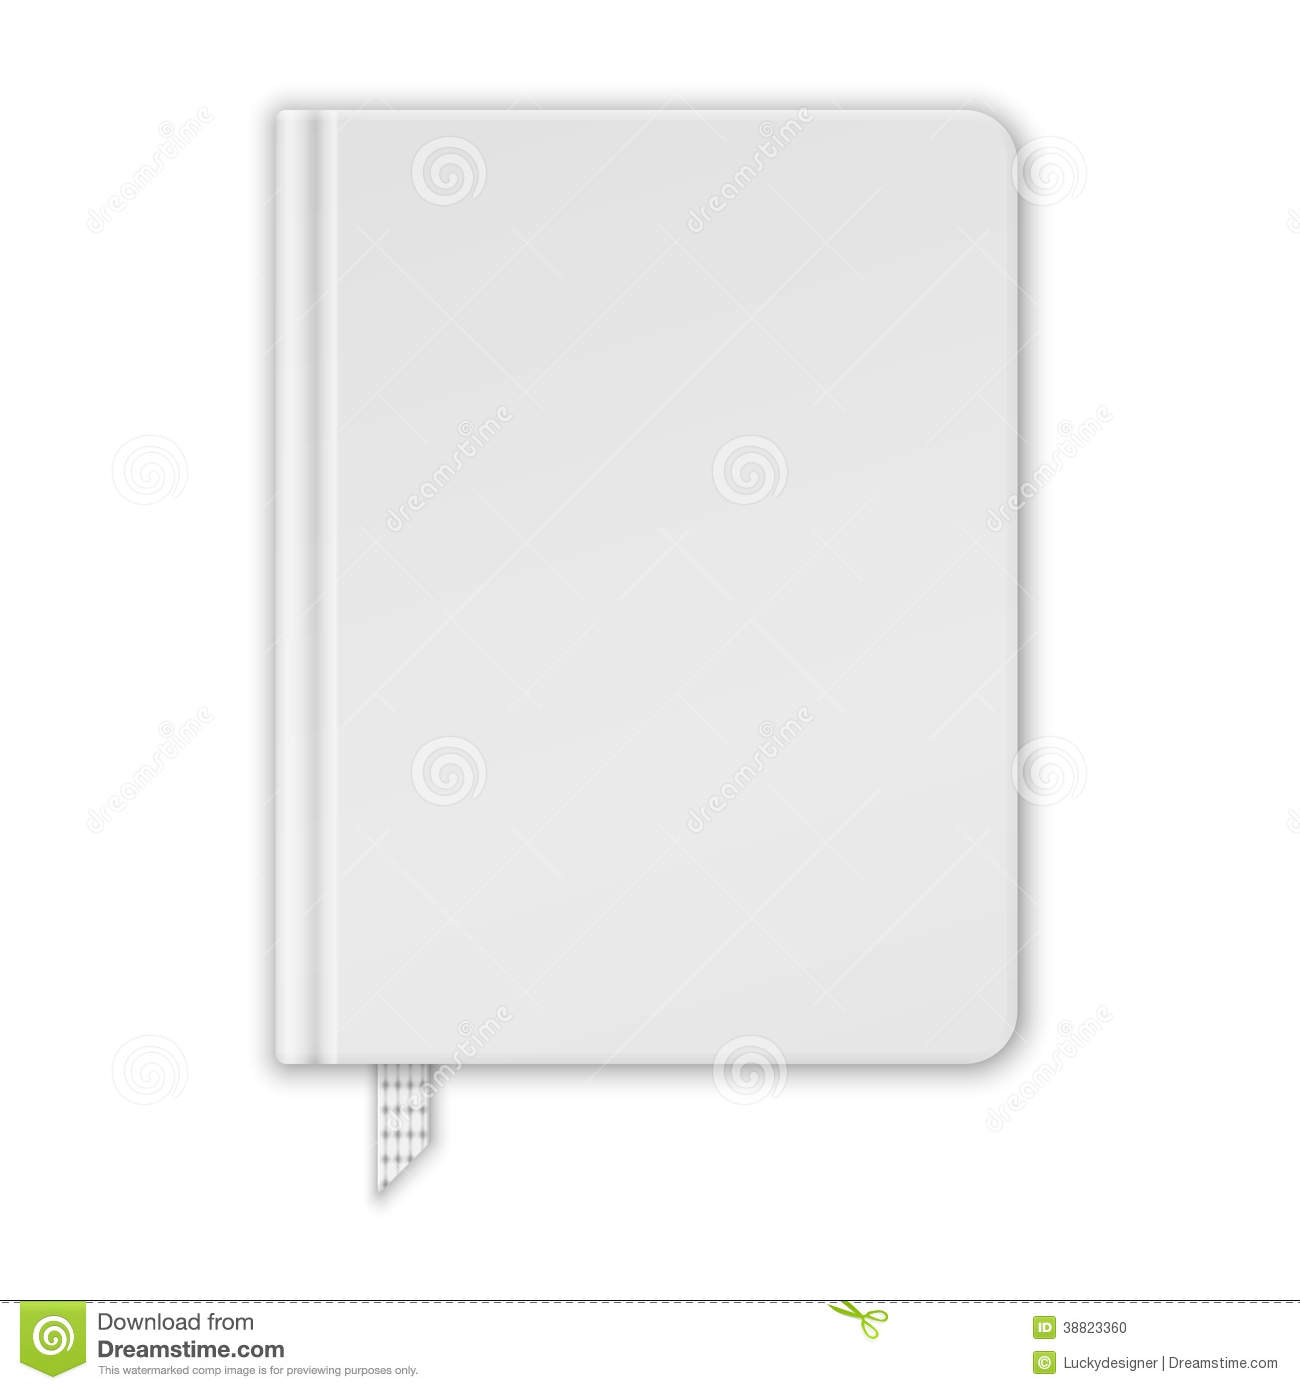 Blank Book Cover Vector Template : Blank white book or notebook template stock vector image